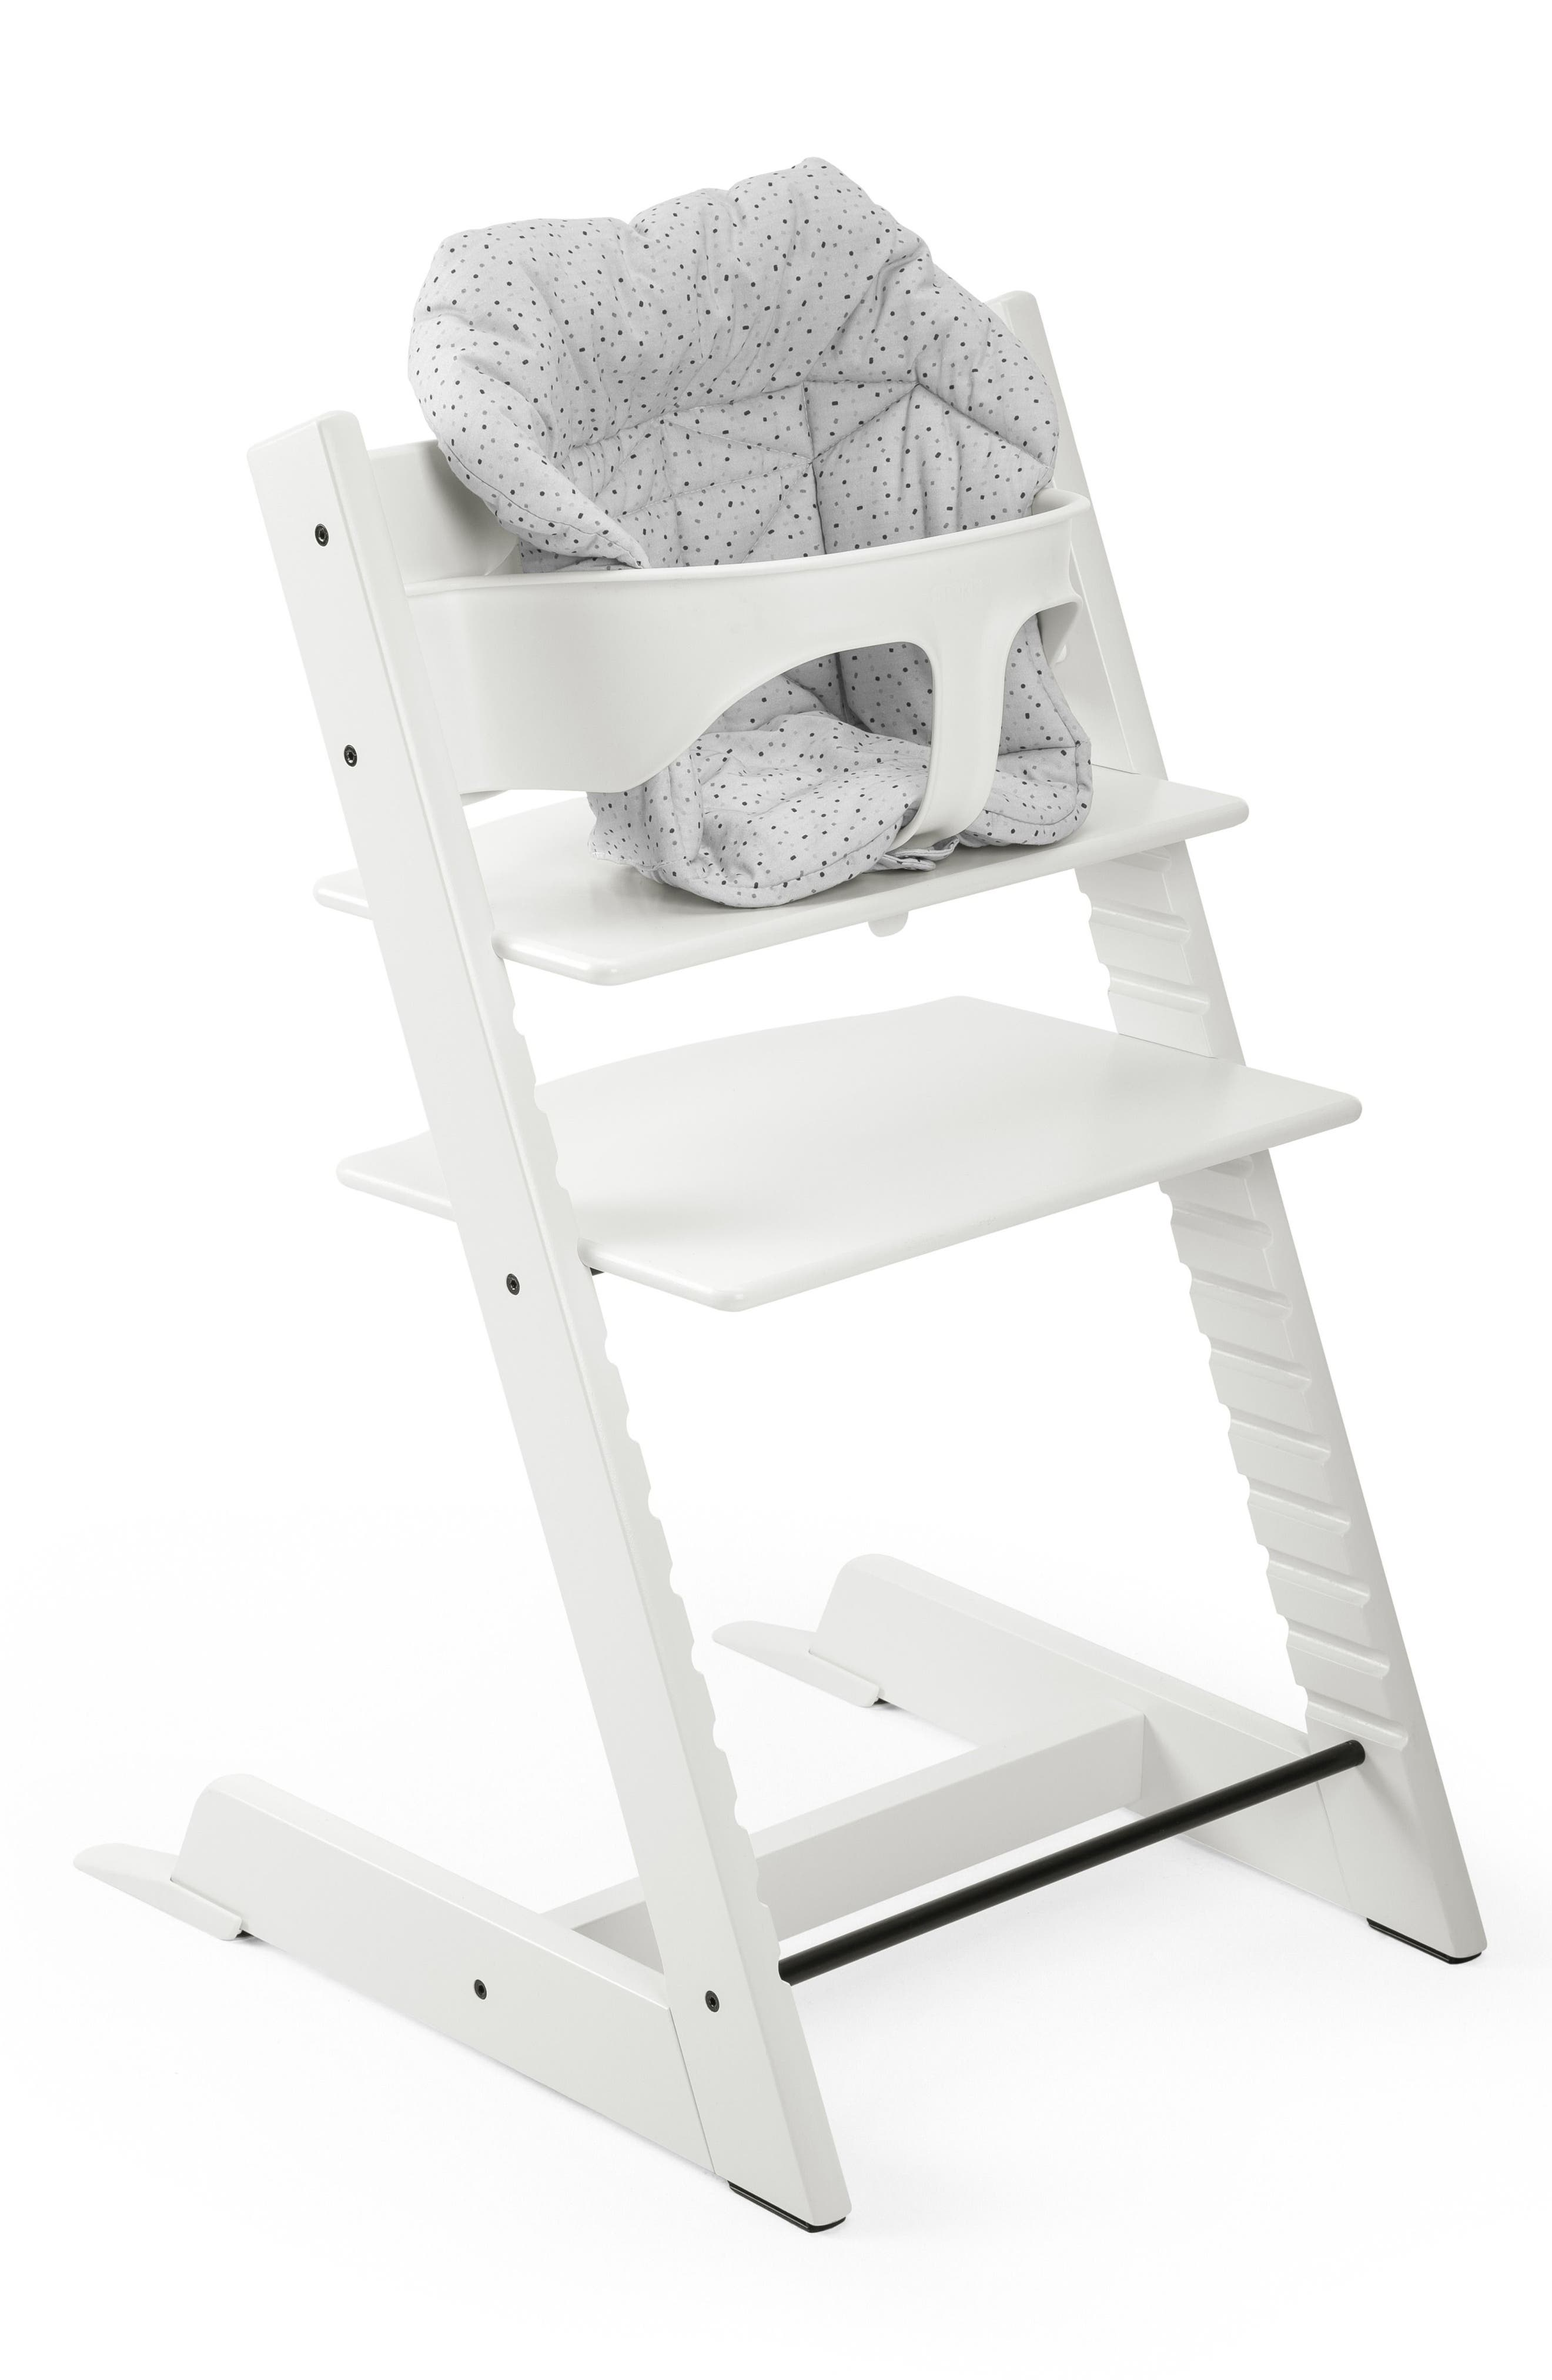 Seat Cushion for Tripp Trapp<sup>®</sup> Highchair,                             Alternate thumbnail 5, color,                             CLOUD SPRINKLE